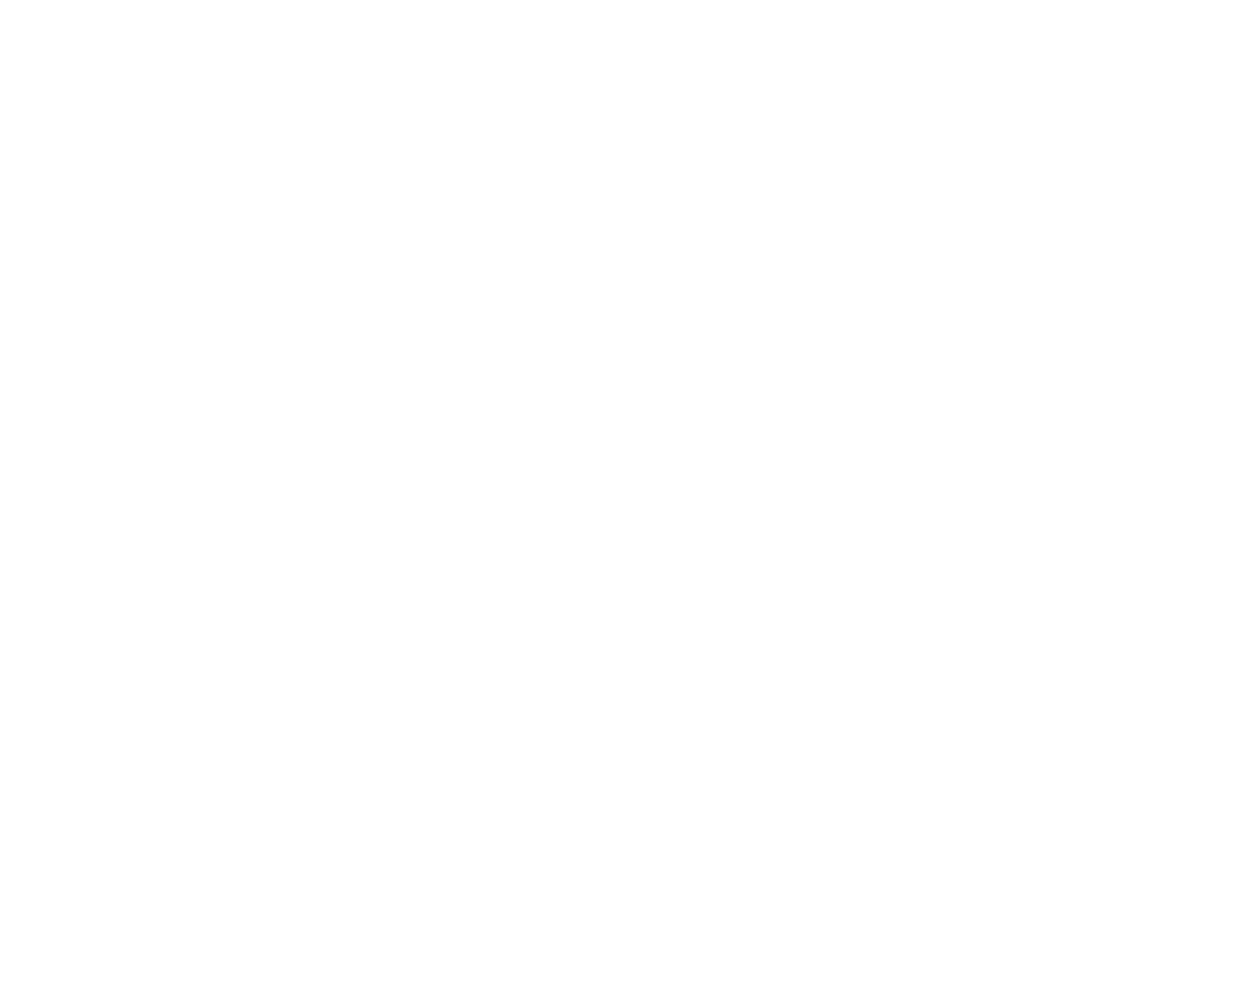 Eau Claire Public School Foundation